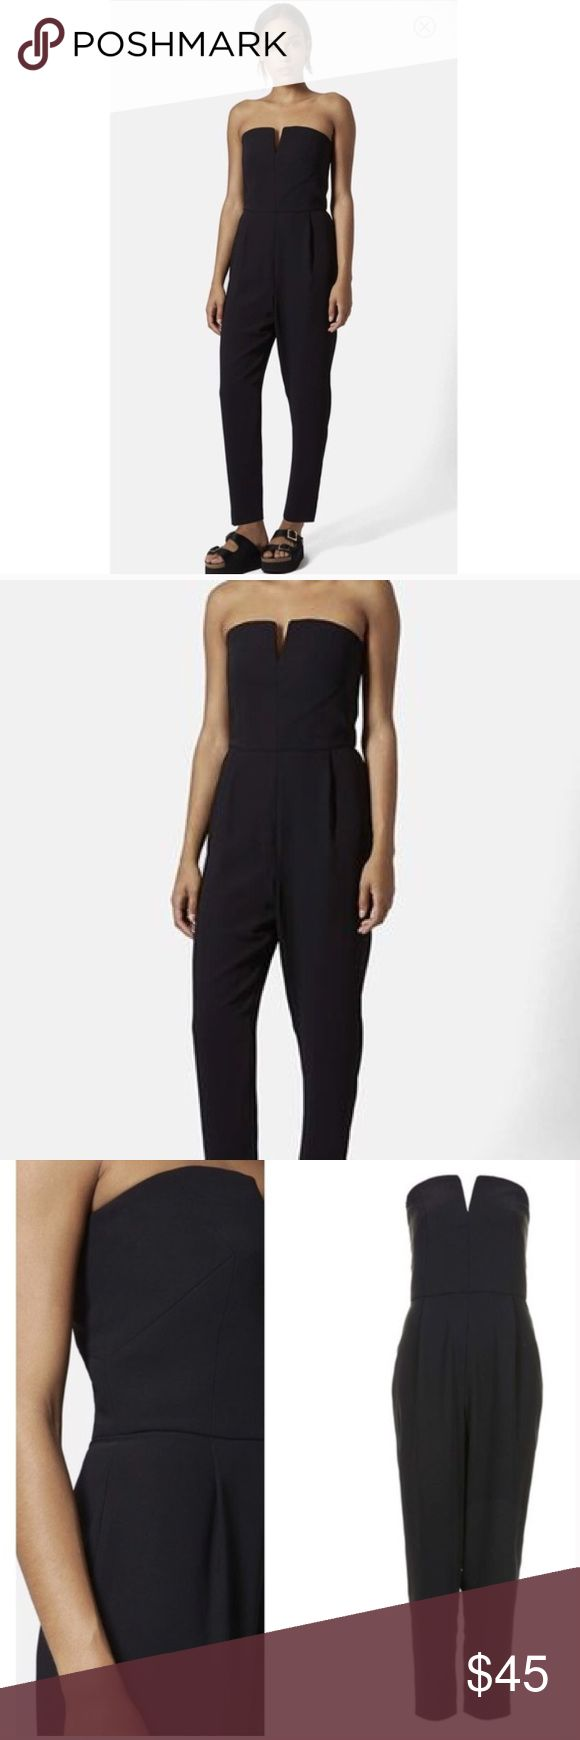 TOPSHOP strapless black jumpsuit Super sexy for any event! TOPSHOP PETITE size 2 Topshop Pants Jumpsuits & Rompers